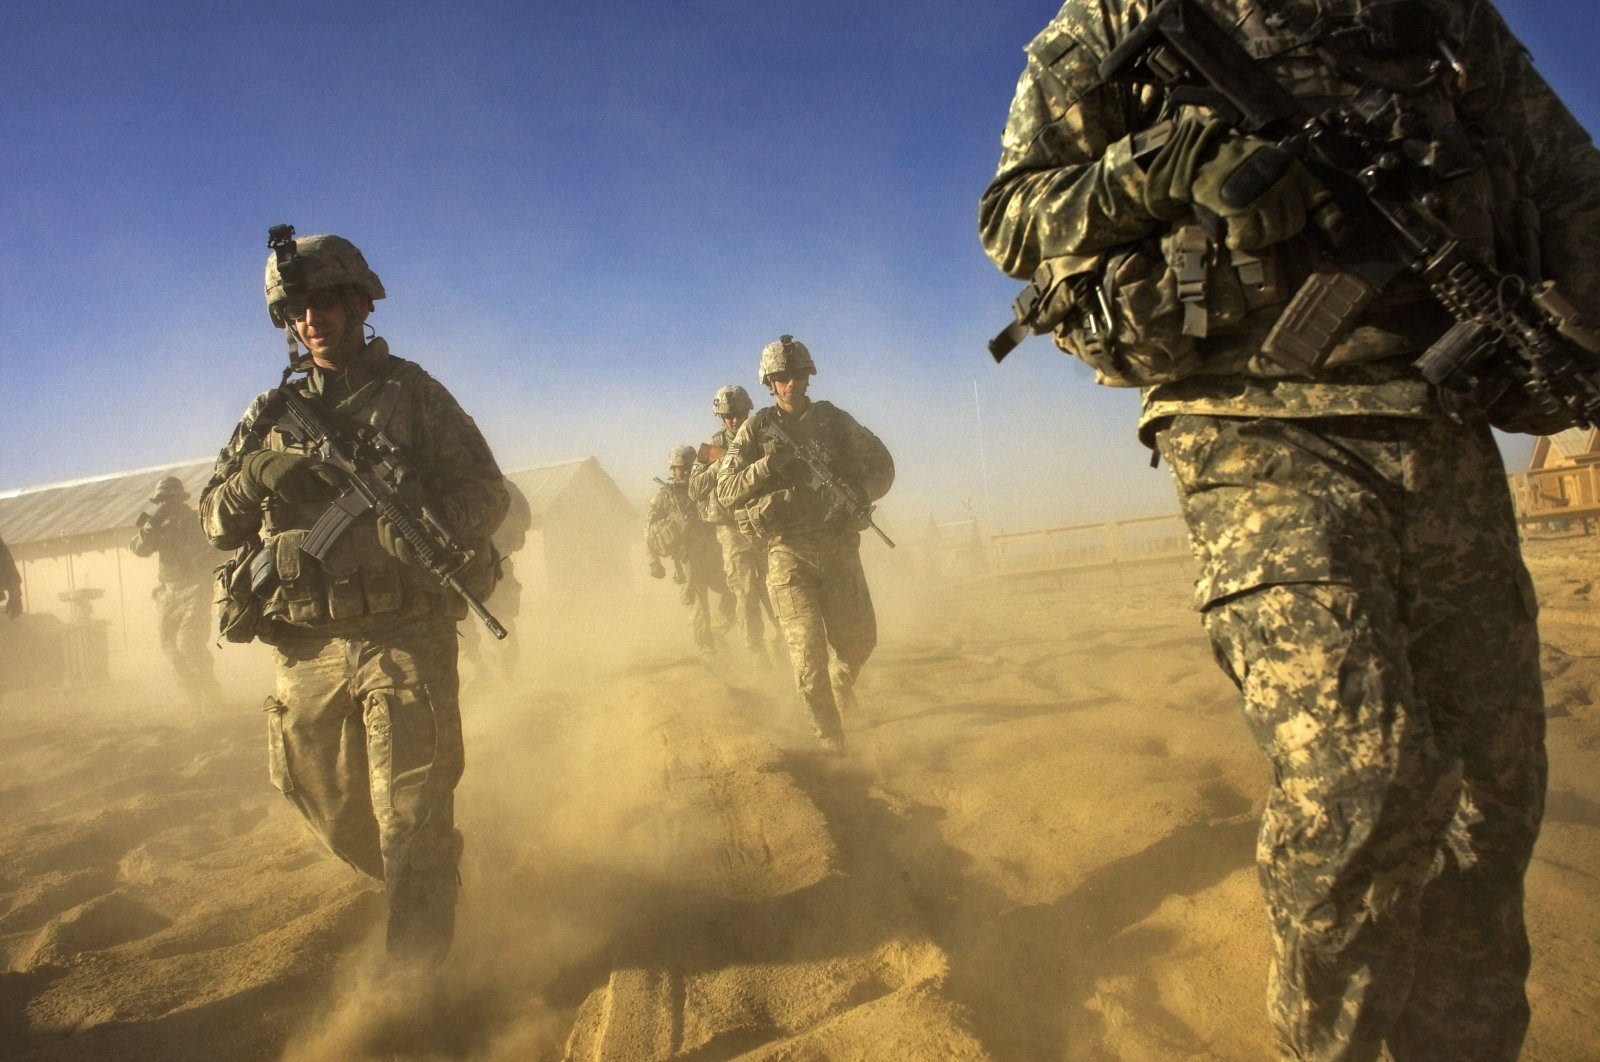 U.S. Army soldiers from the 1-506 Infantry Division set out on a patrol in Paktika province, situated along the Afghan-Pakistan border, Nov. 28, 2008. (AFP Photo)